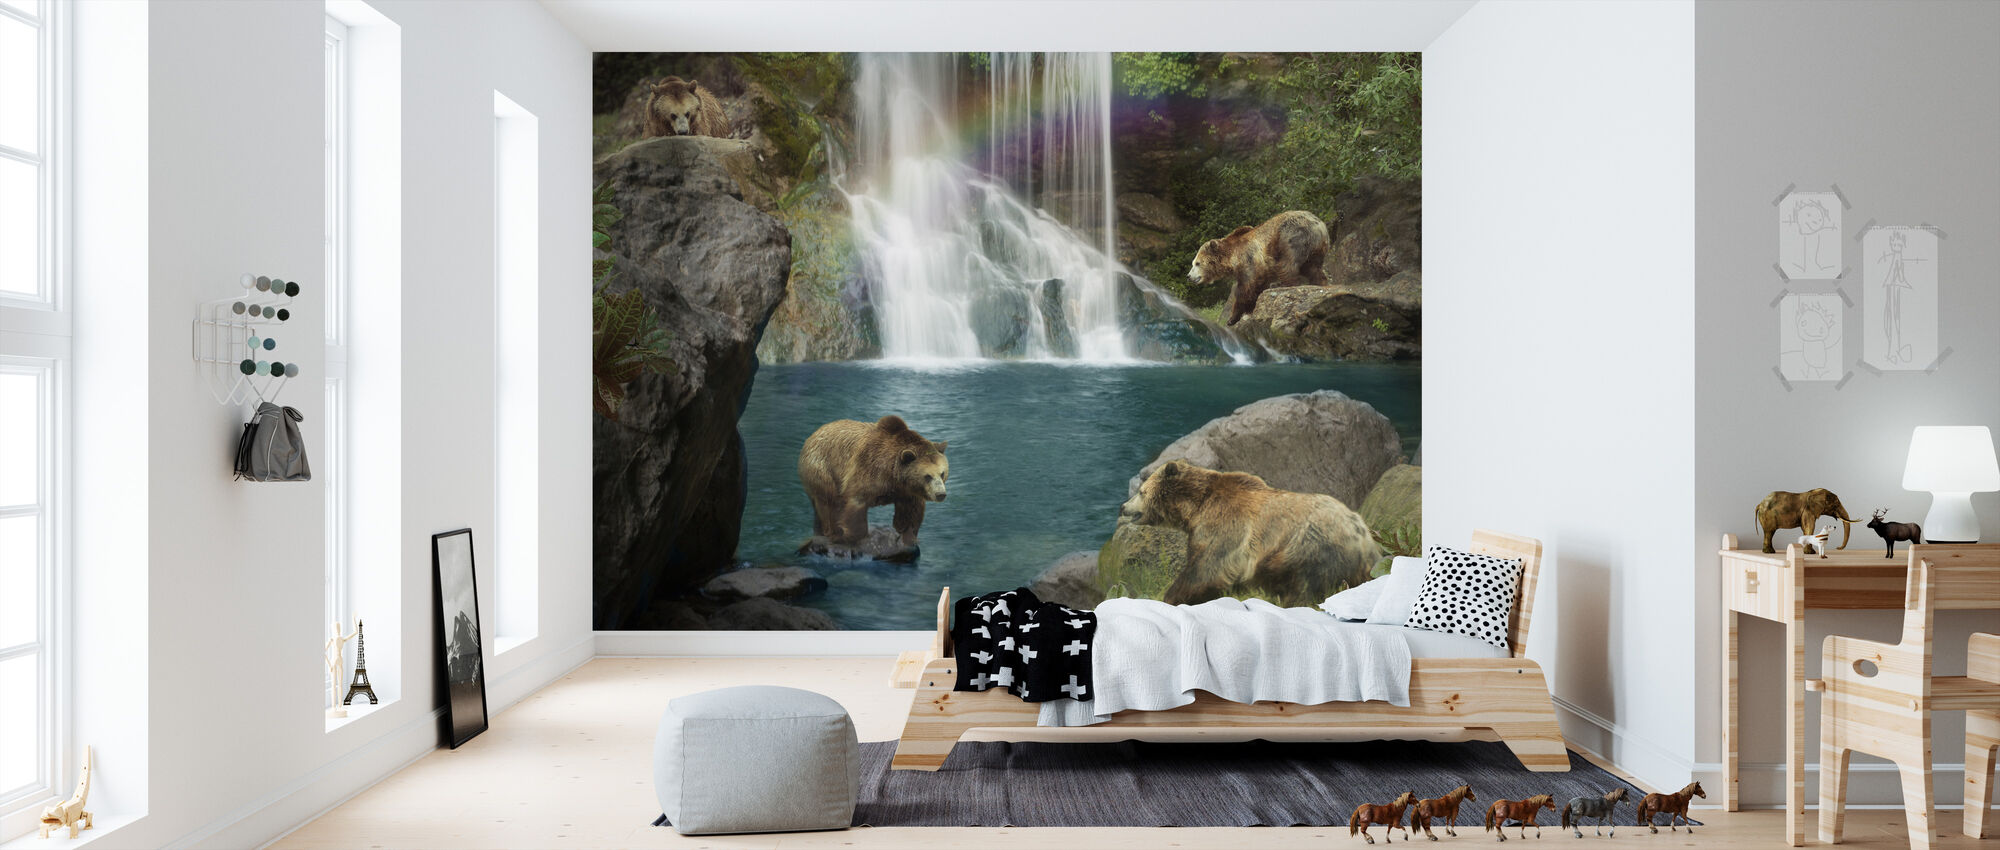 Bear Falls - Wallpaper - Kids Room